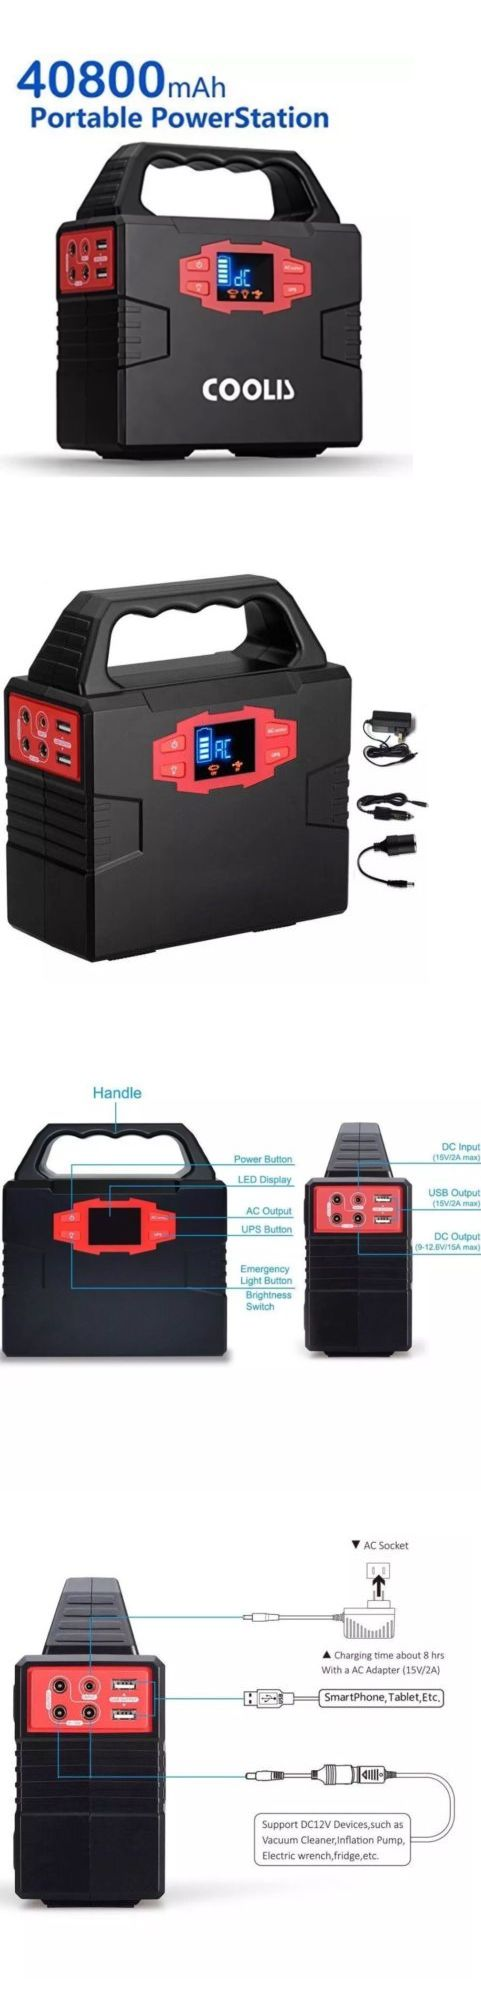 Power Inverters: Coolis 150Wh Portable Solar Power Inverter Generator, 40800Mah Lithium New -> BUY IT NOW ONLY: $169.99 on eBay!